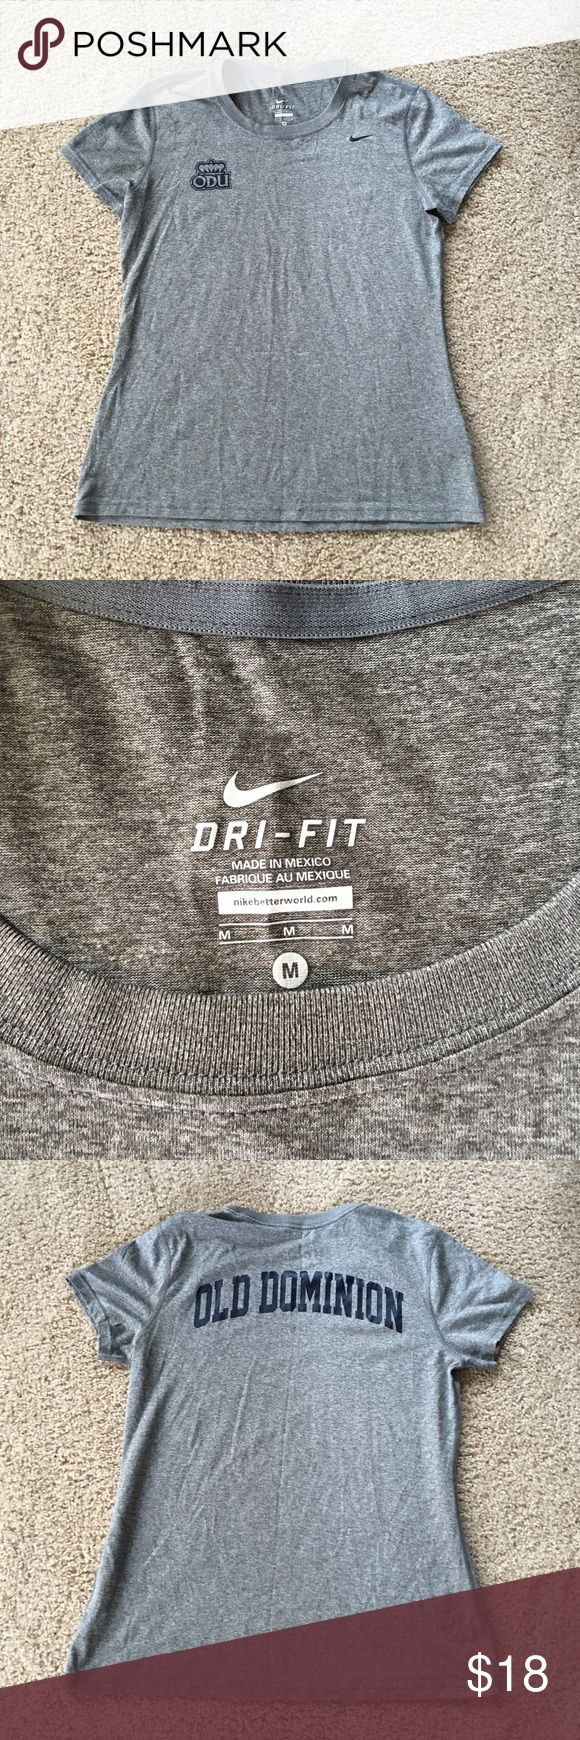 Nike Dri Fit ODU shirt sz: Med Brand new without tags Nike Old Dominion University gray Dry fit top sz: Med. no flaws, as it has never been worn 💖 Nike Tops Tees - Short Sleeve